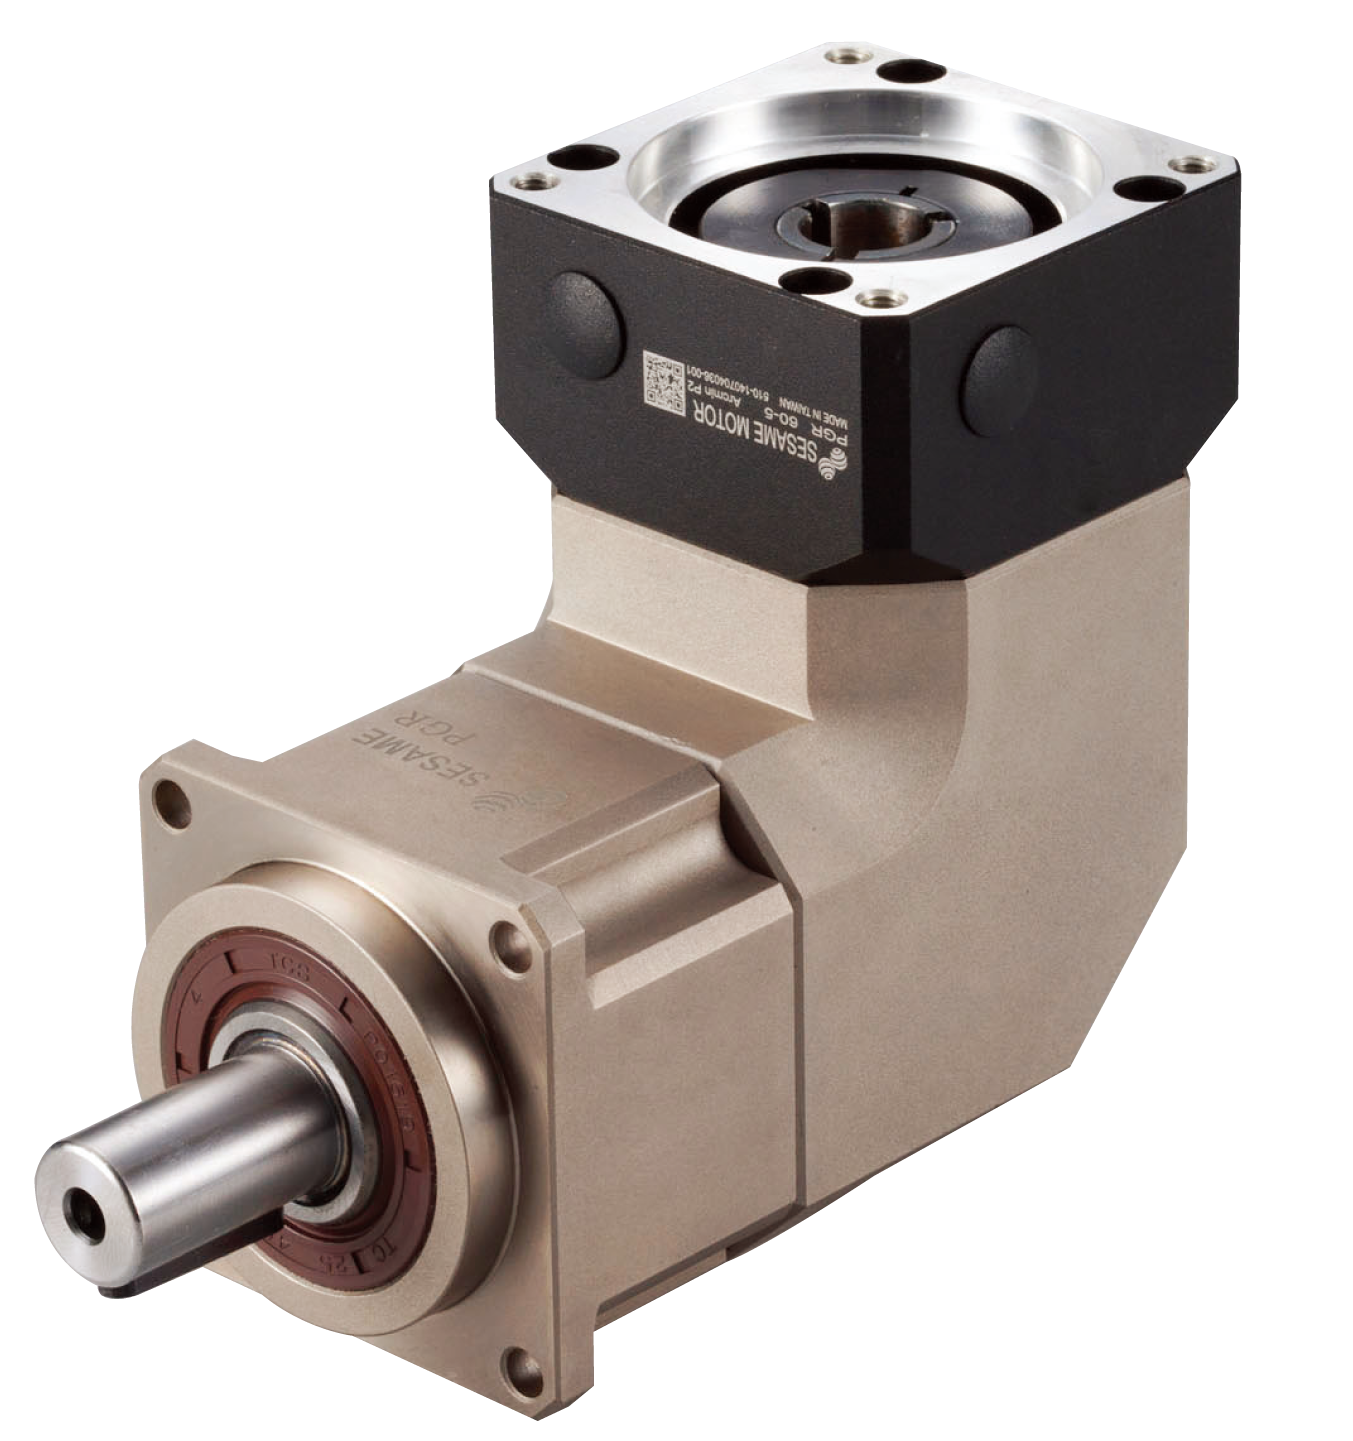 planetary gearhead, gear reducer, gearbox, 行星�p速�C